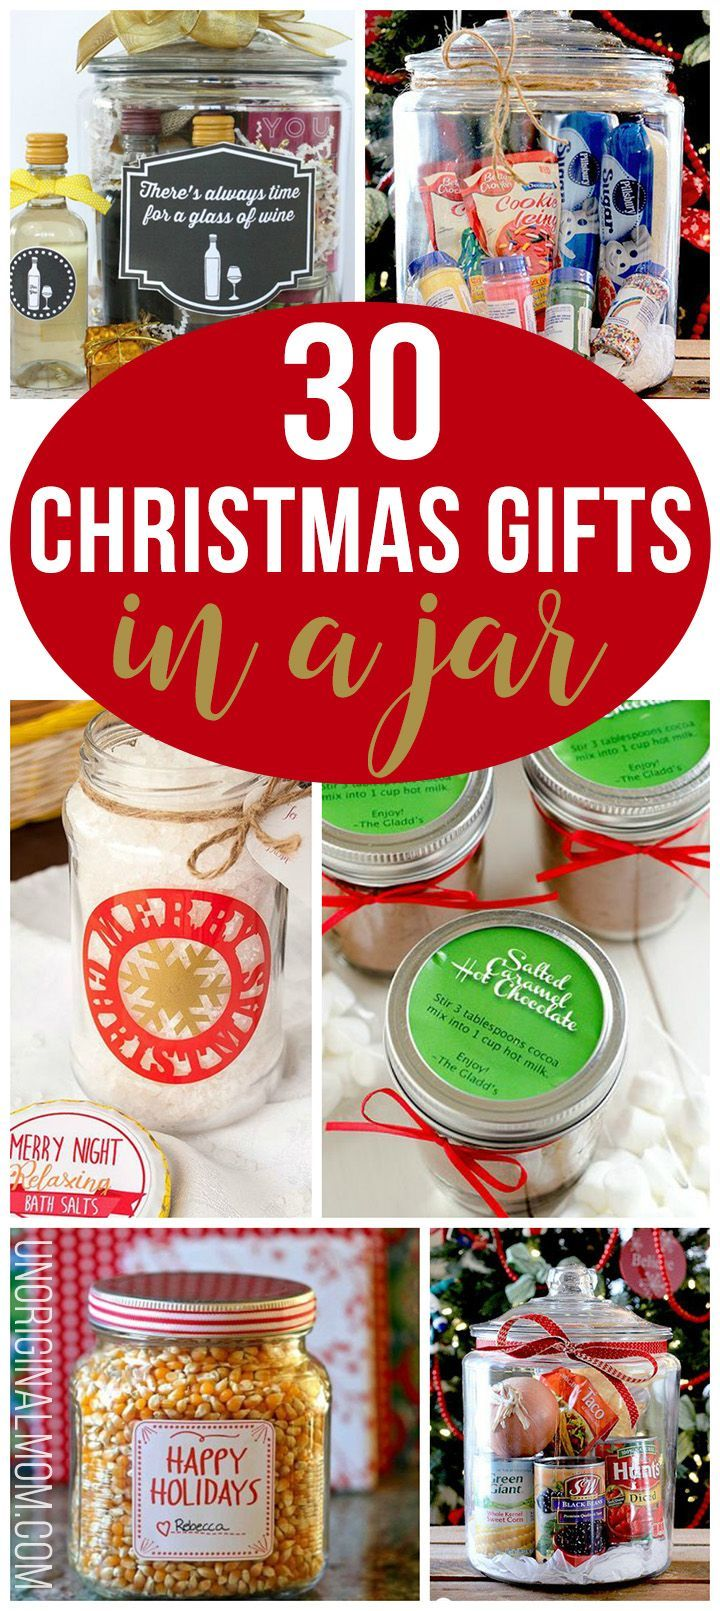 Christmas gifts in a jar are a great way to do fun, personal, and unique gifts on a budget. Here are 30 amazing ideas to get your inspiration flowing!